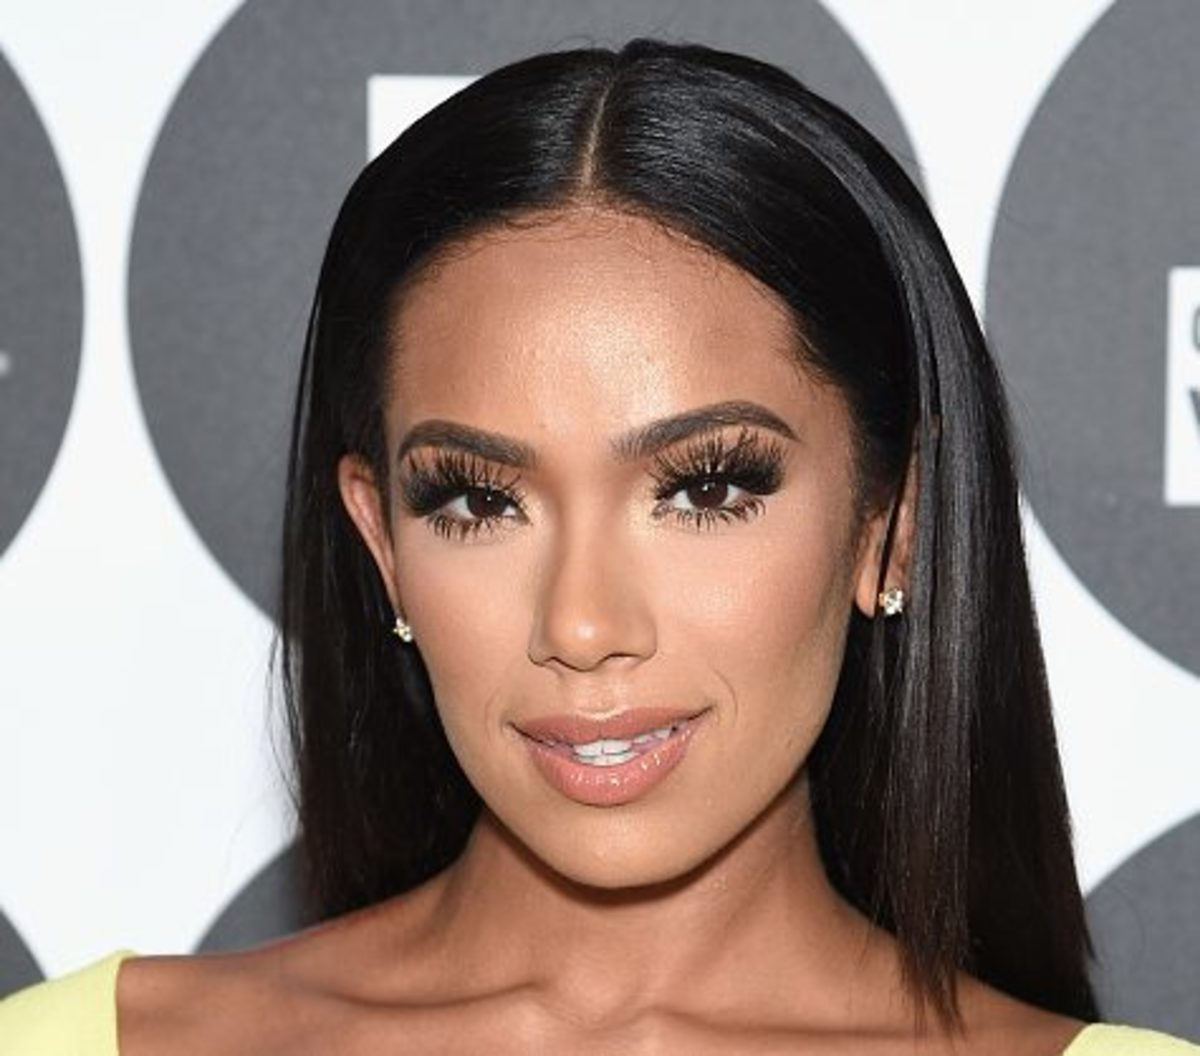 erica-mena-invites-fans-to-party-this-month-see-her-controversial-announcement